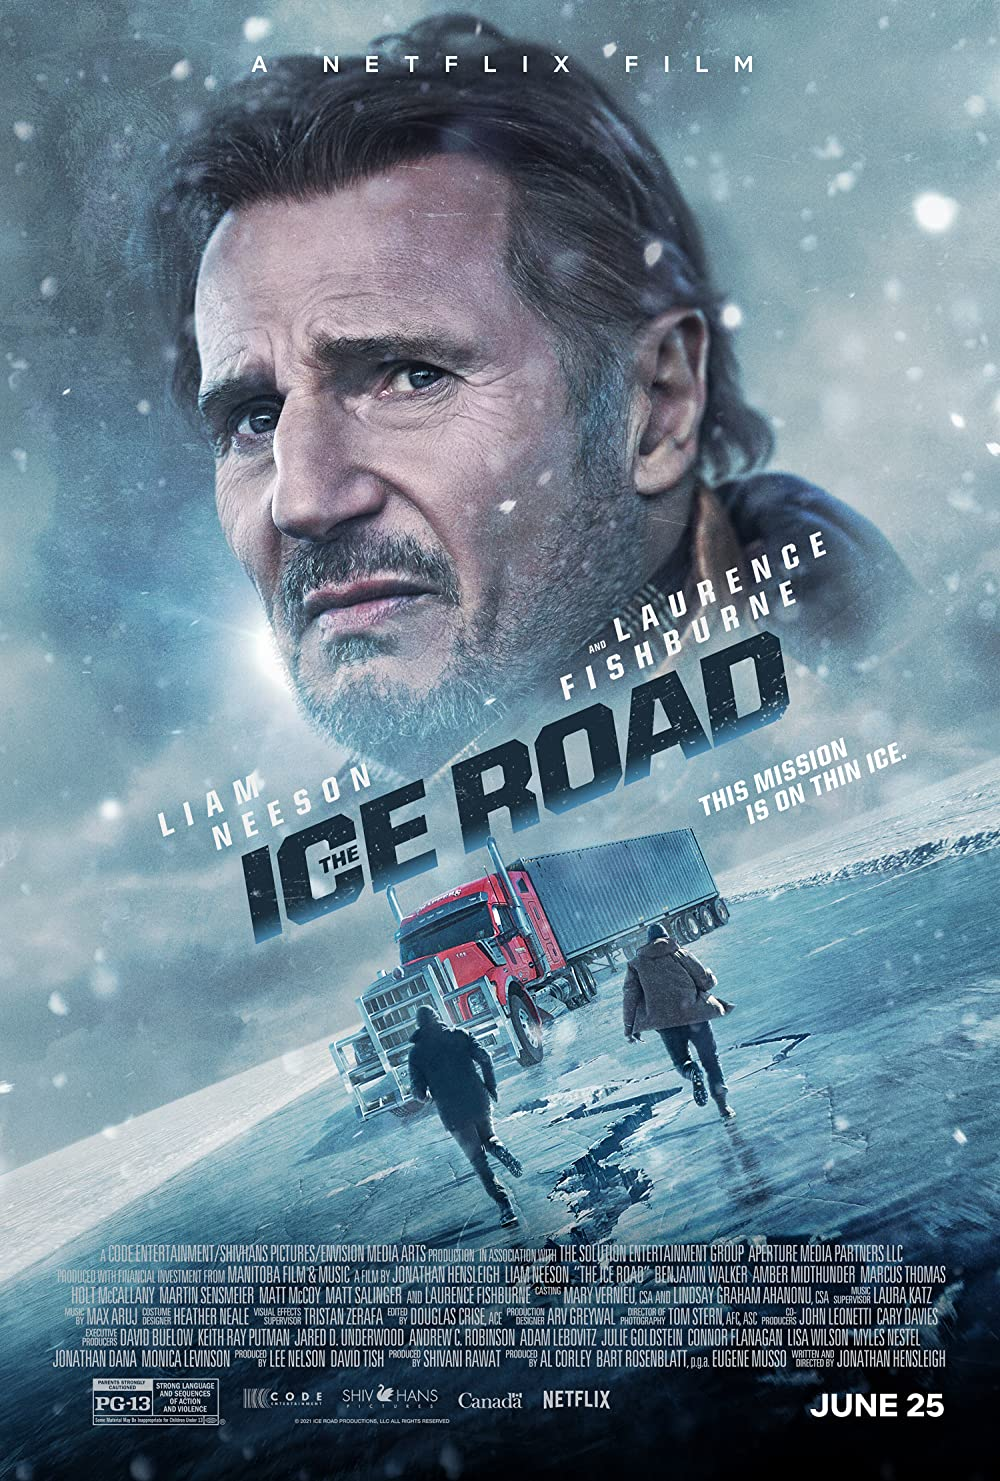 film-the-ice-road-streaming-netflix-film-the-ice-road-streaming-netflix.jpg